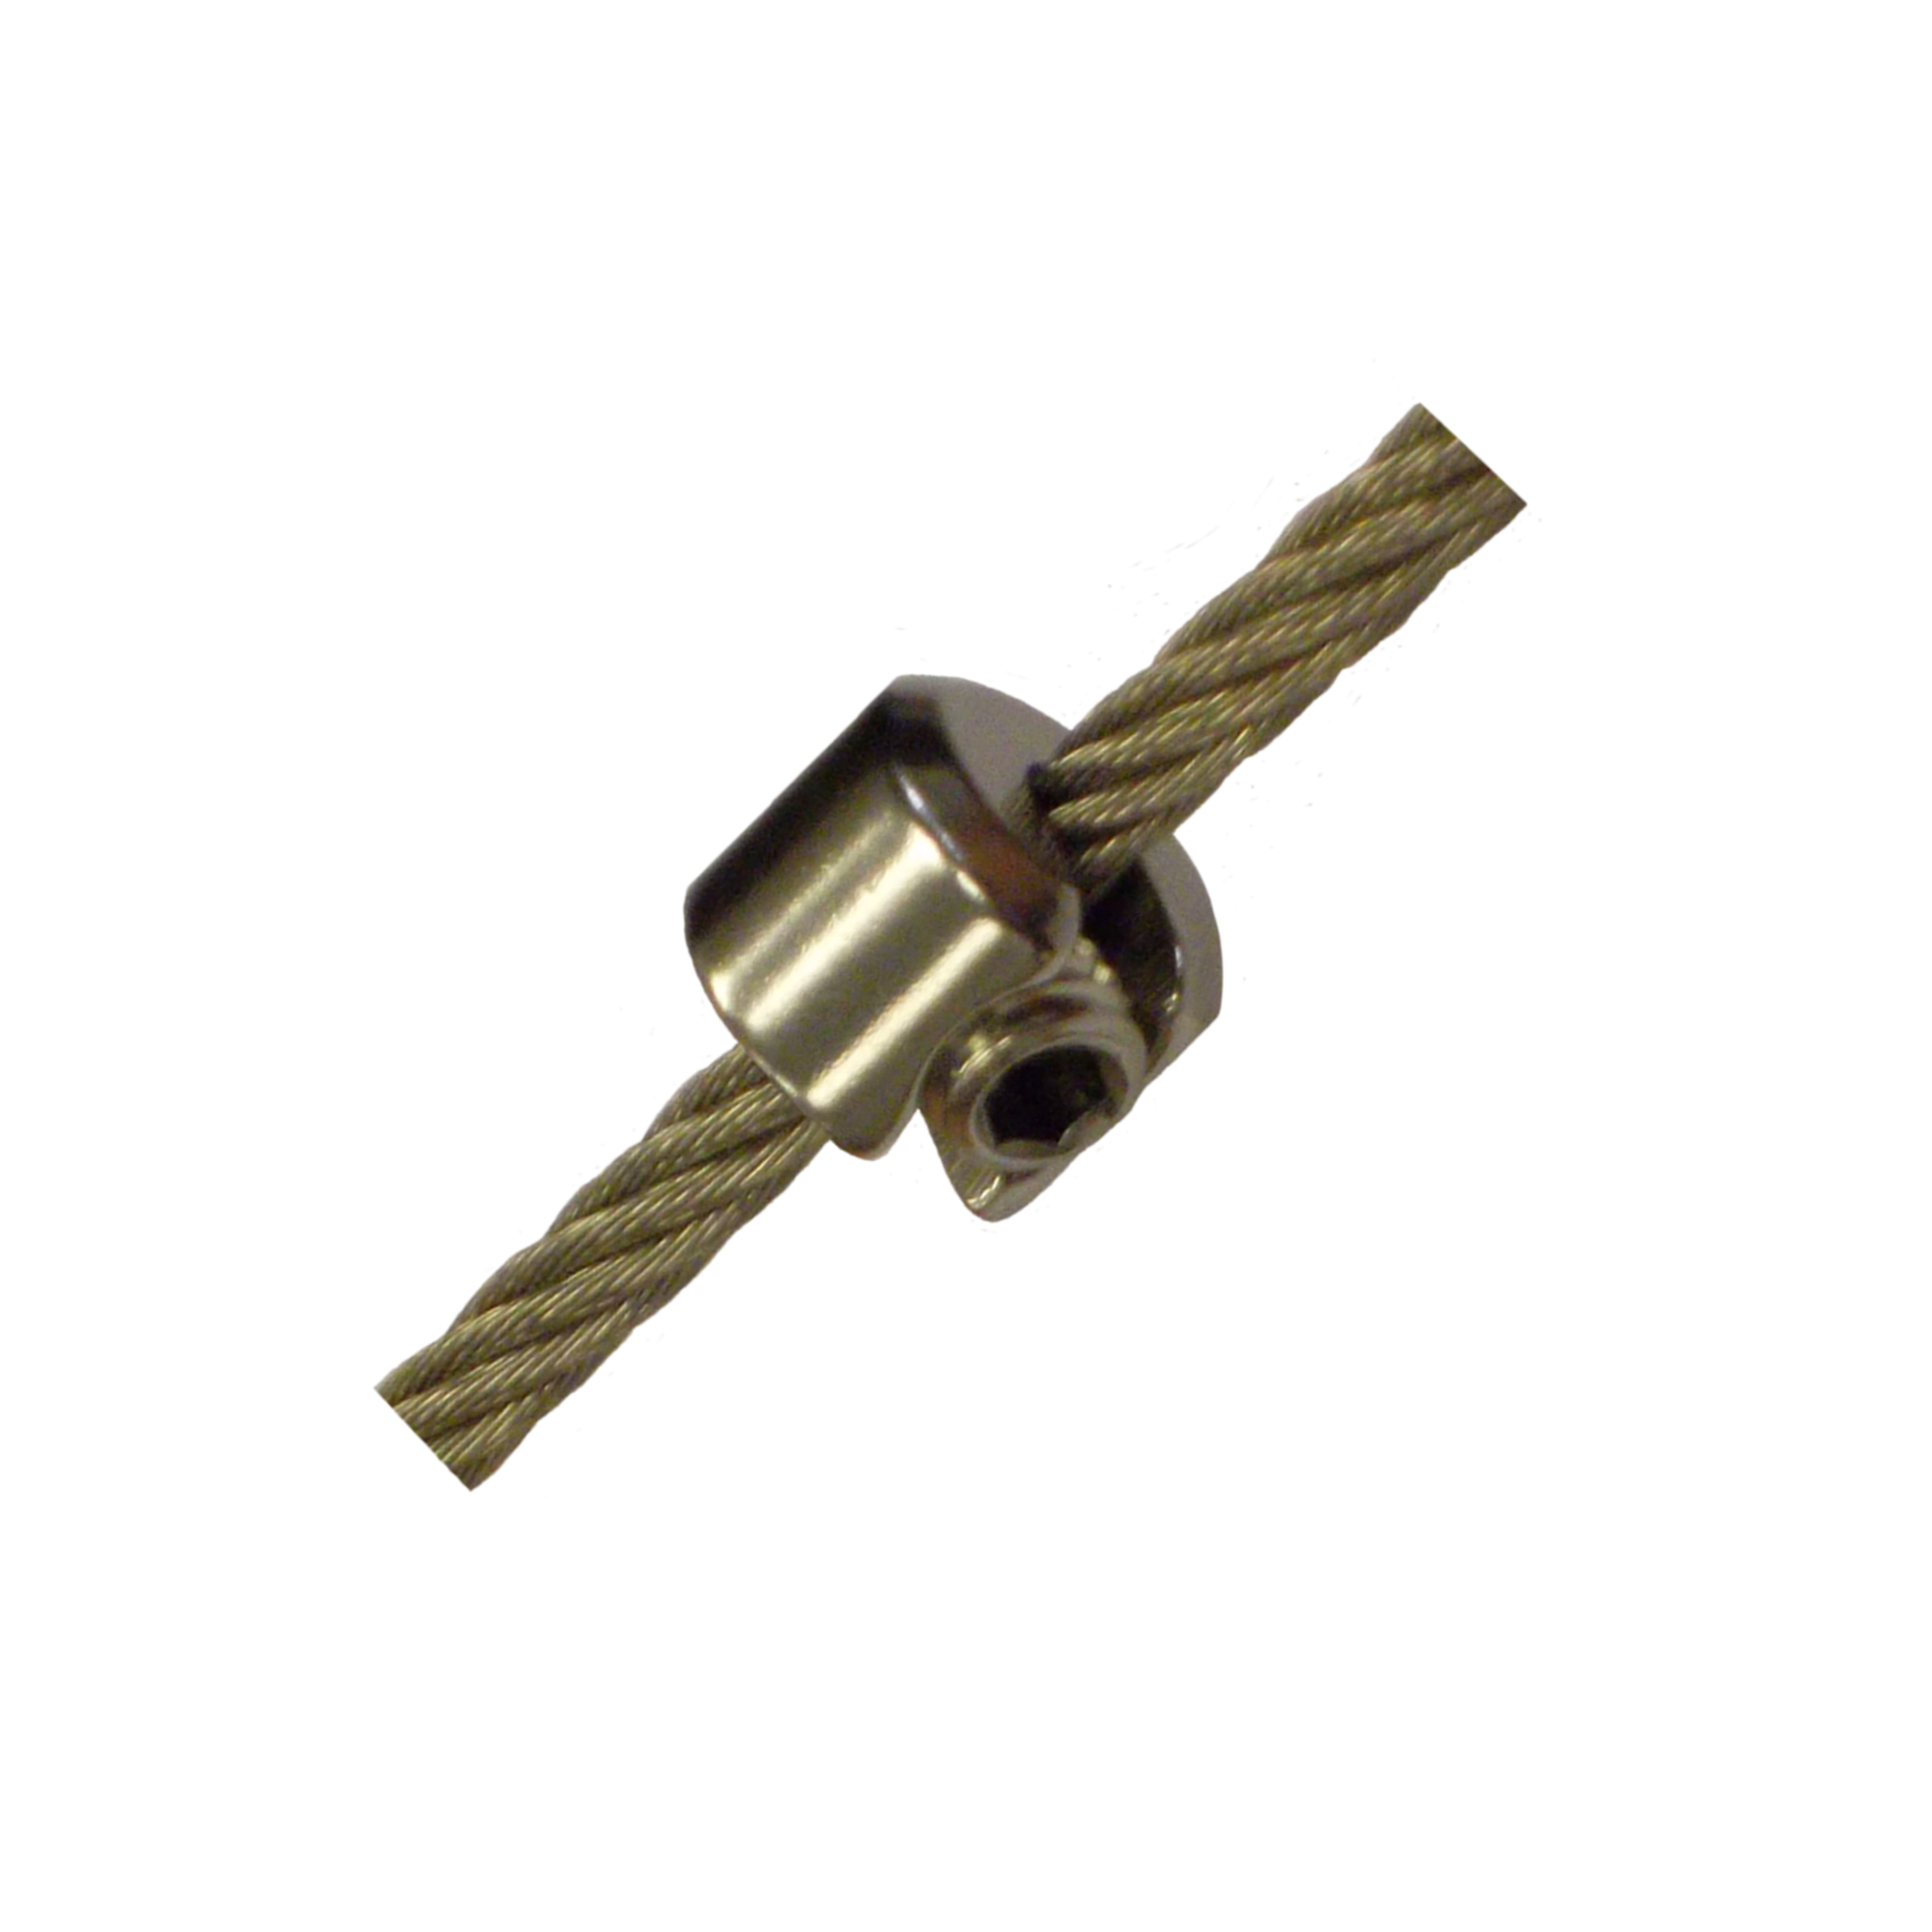 M8 Stainless Steel DIY Stop Fitting for 3mm & 4mm Cable